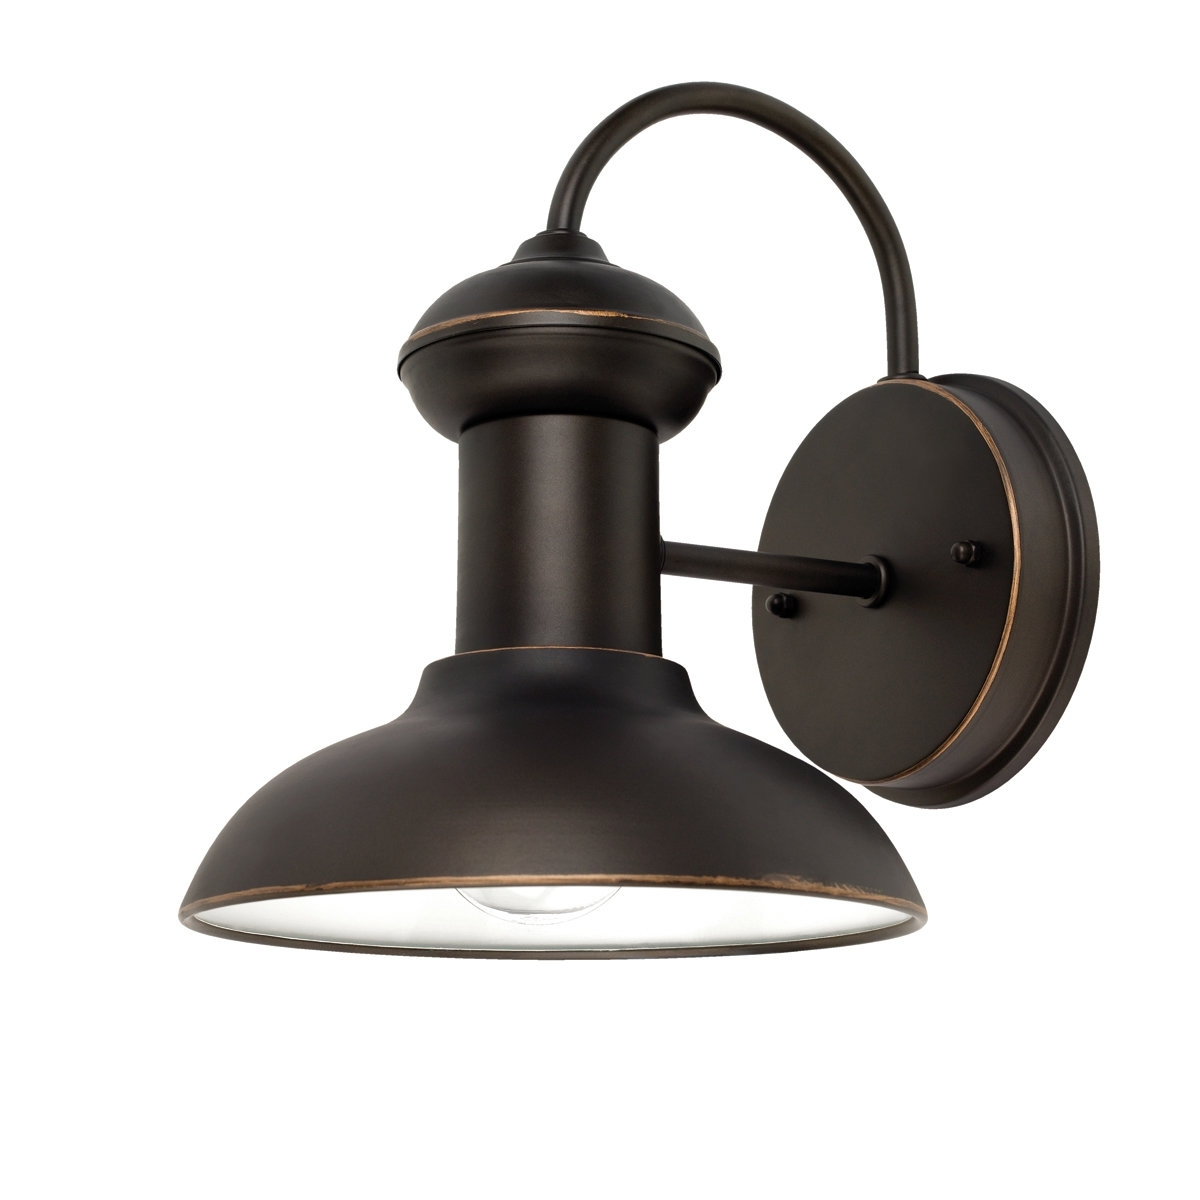 Inspiration about Gooseneck Barn Light | Wayfair Regarding Garden Porch Light Fixtures At Wayfair (#2 of 15)